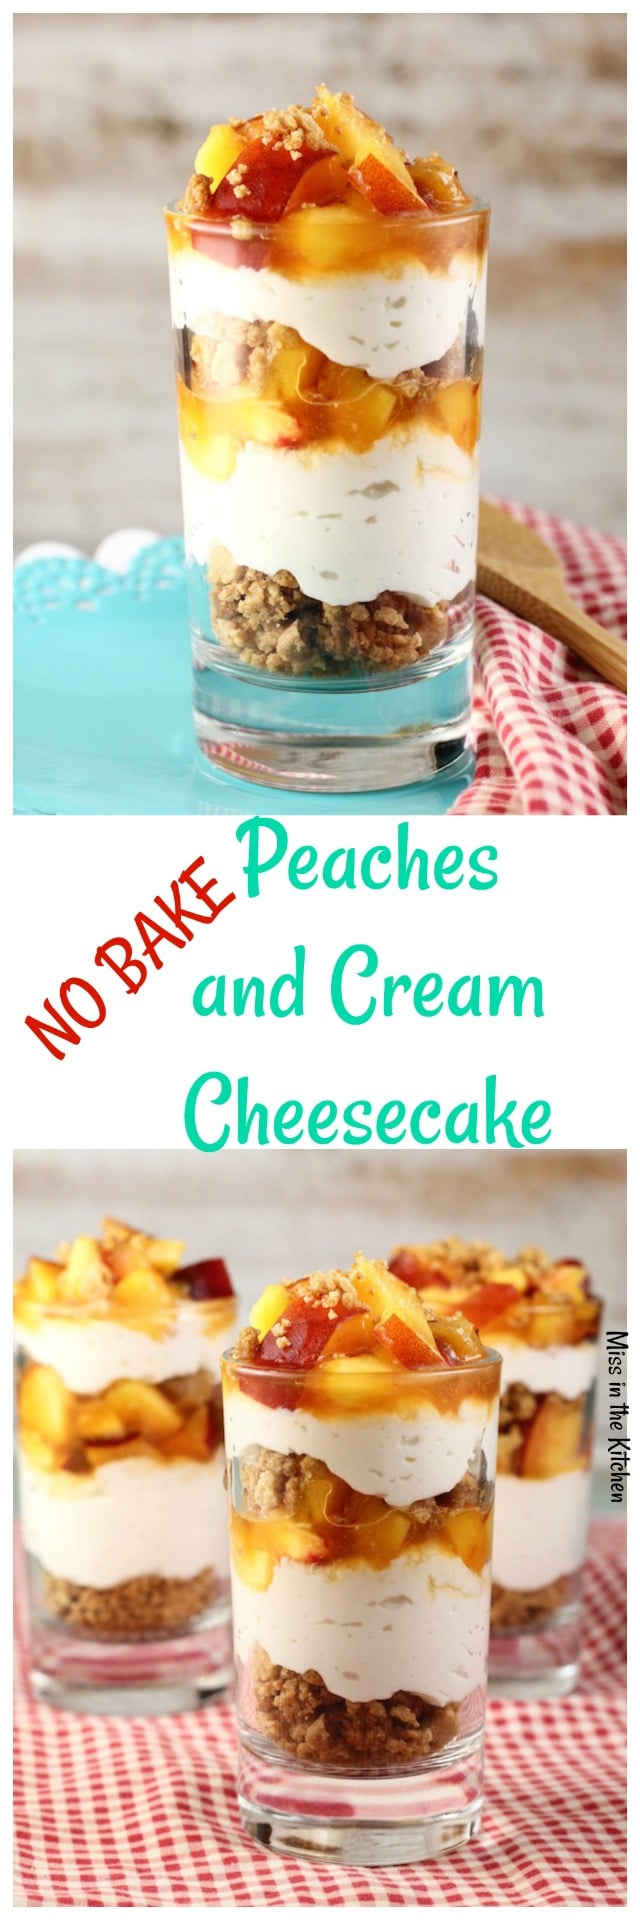 No Bake Peaches and Cream Cheesecake is a delicious dessert for any summer occasion. Recipe from MissintheKitchen.com #ad #SummerDessertWeek